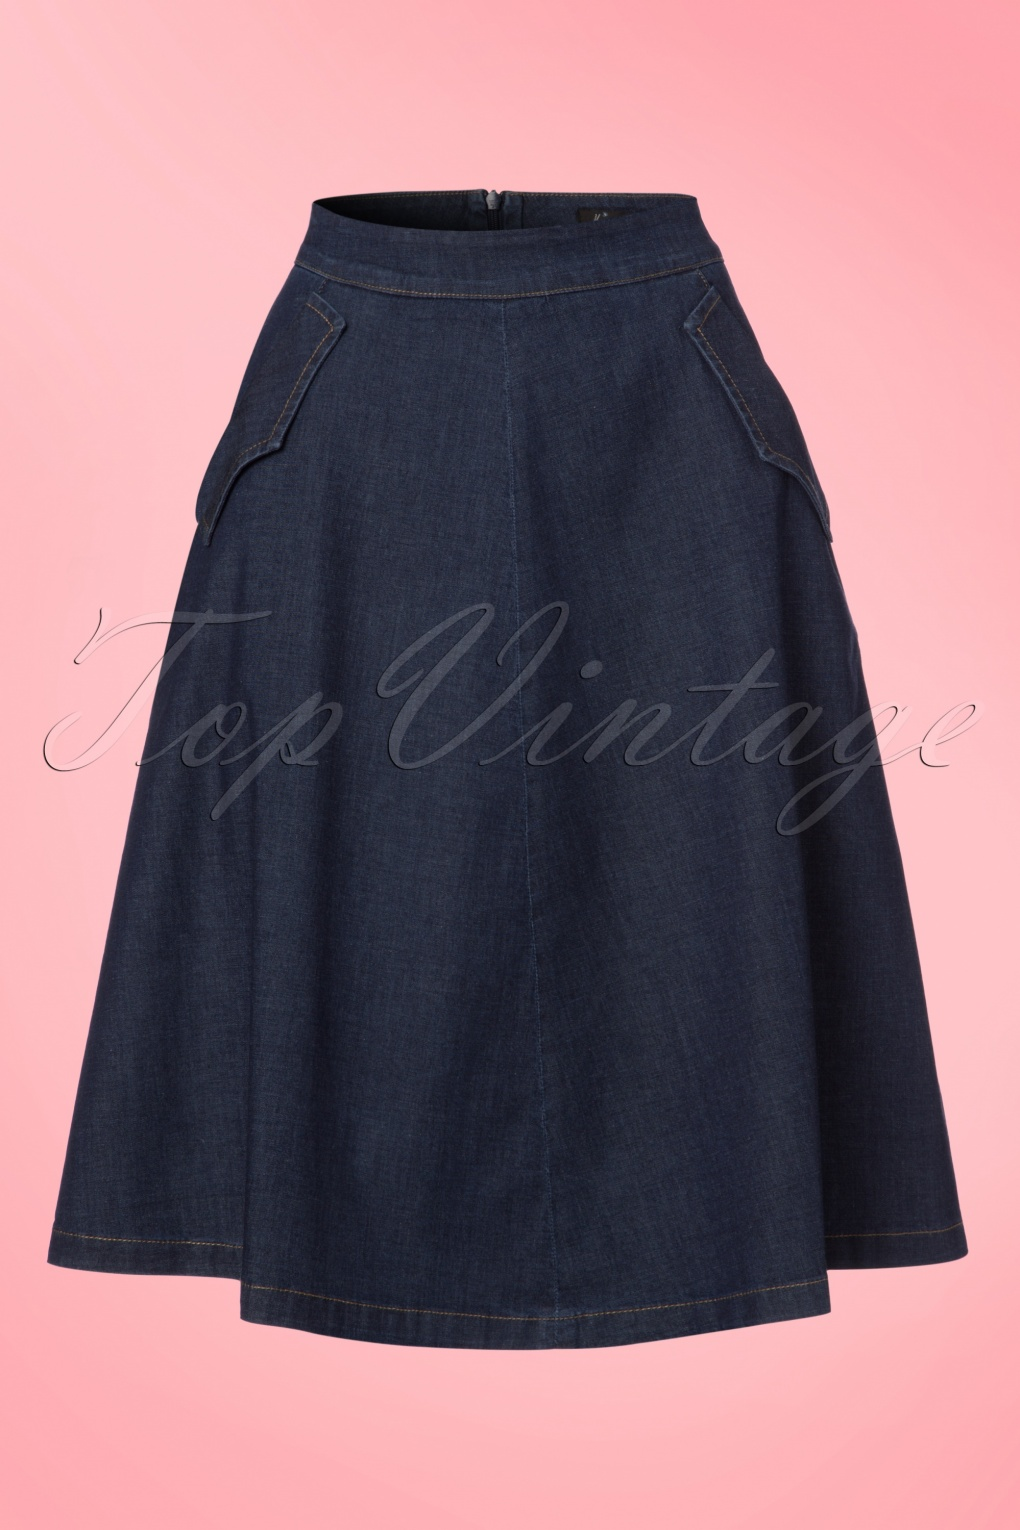 1960s Style Skirts 70s Delphi Chambray Skirt in Dutch Blue £61.38 AT vintagedancer.com